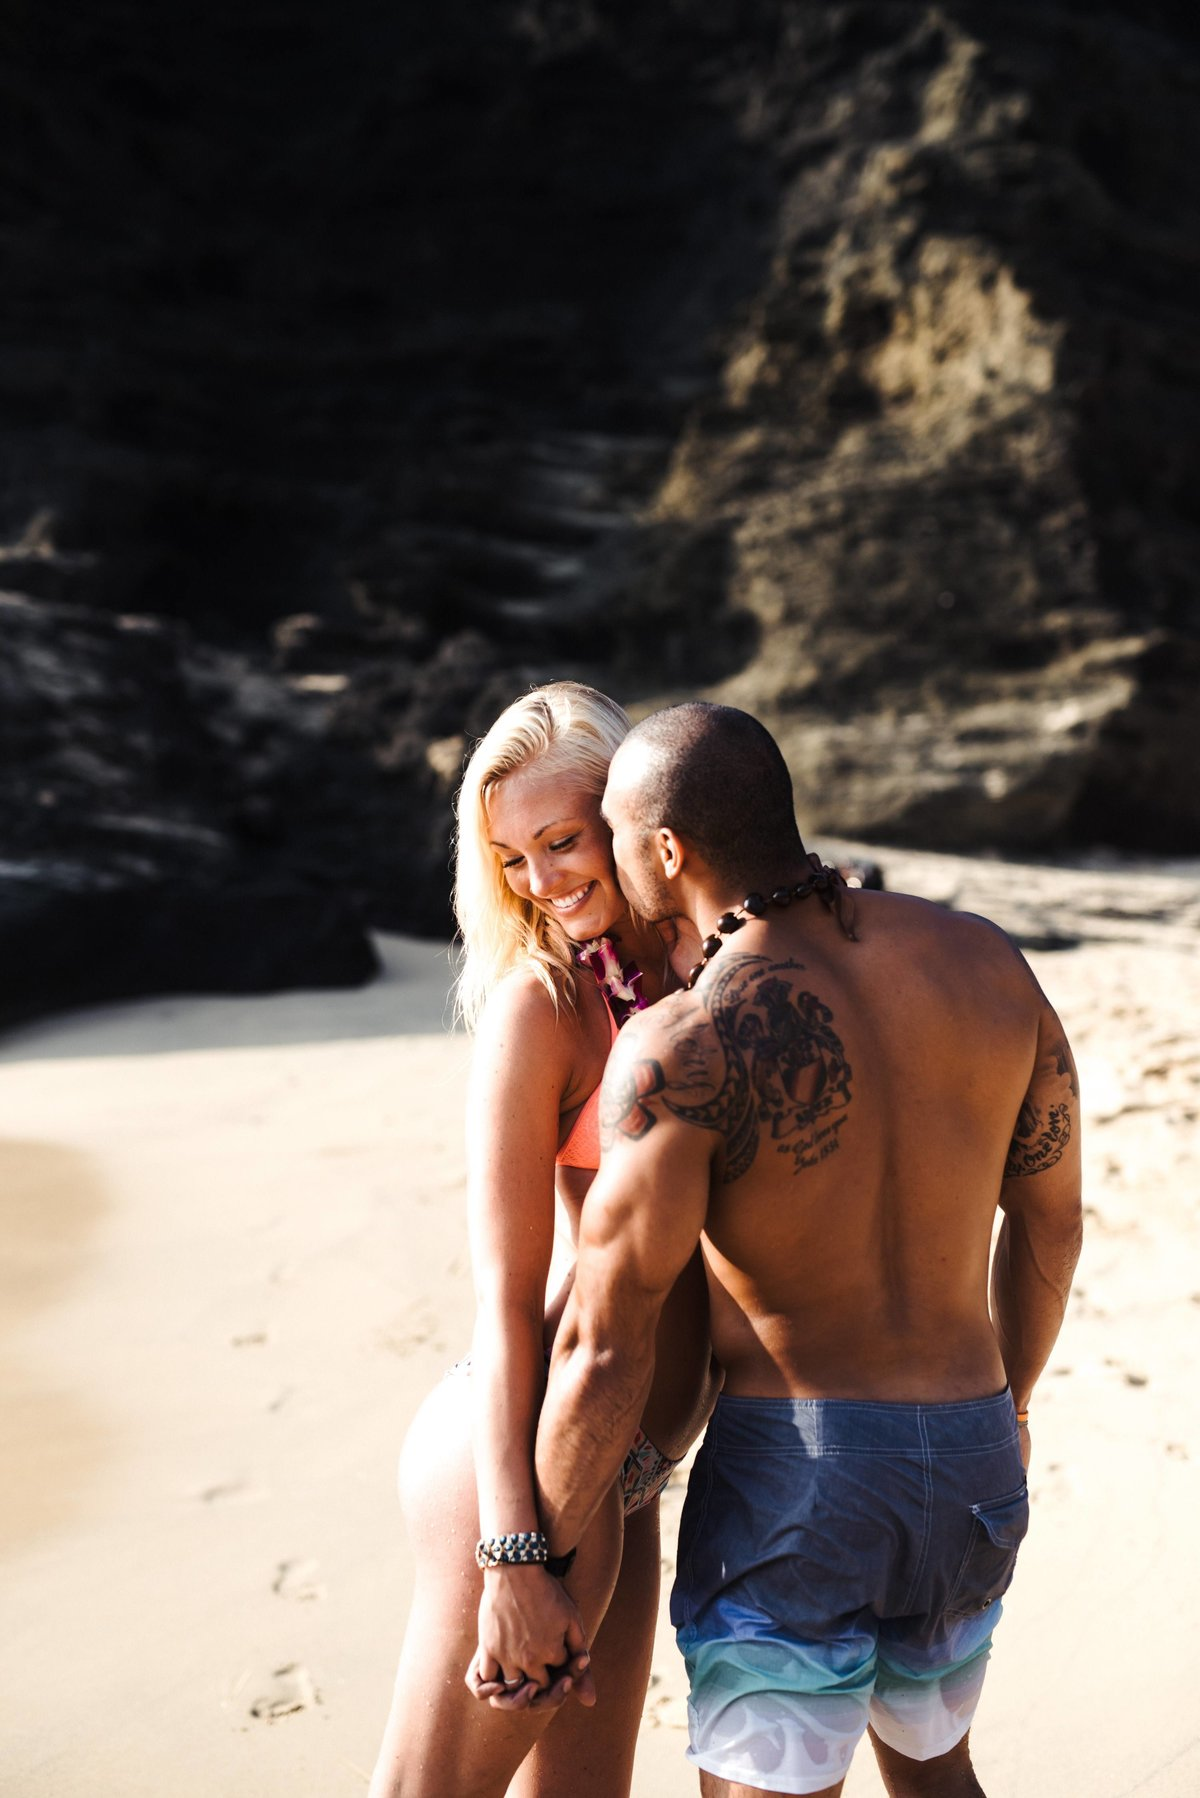 Eternity Beach Honolulu Hawaii Destination Engagement Session - 90